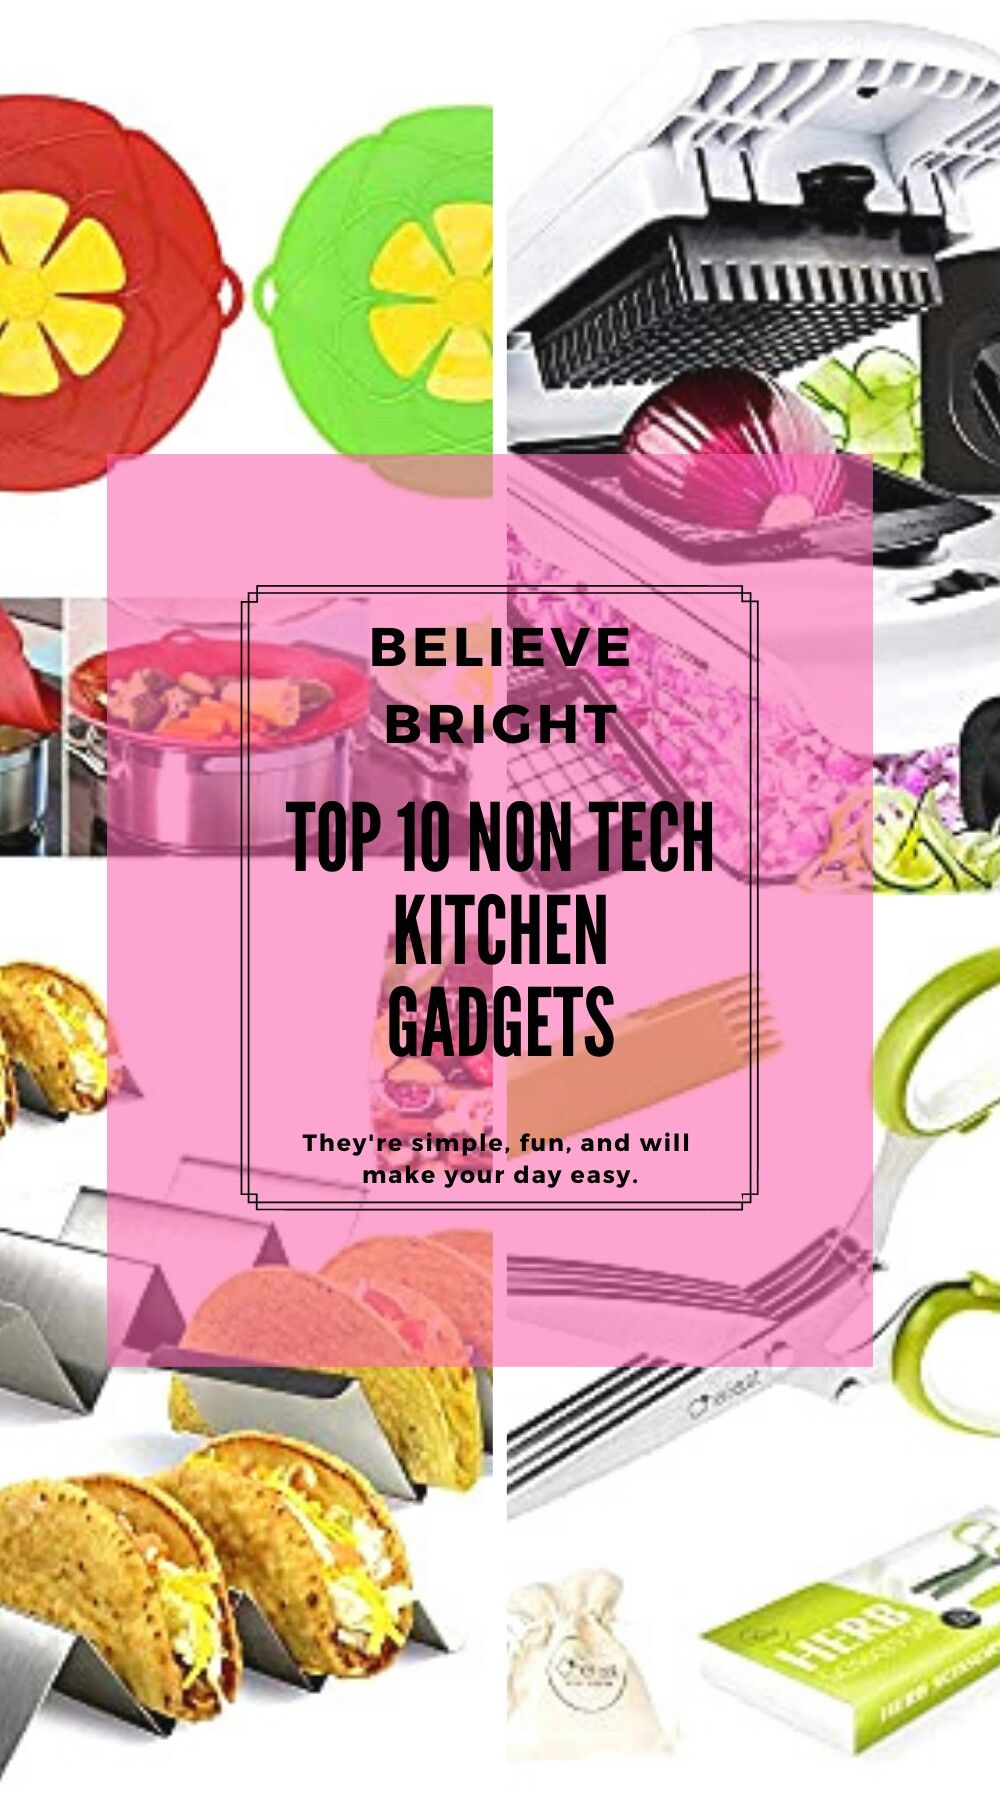 10 must have kitchen gadgets to shop from amazon.